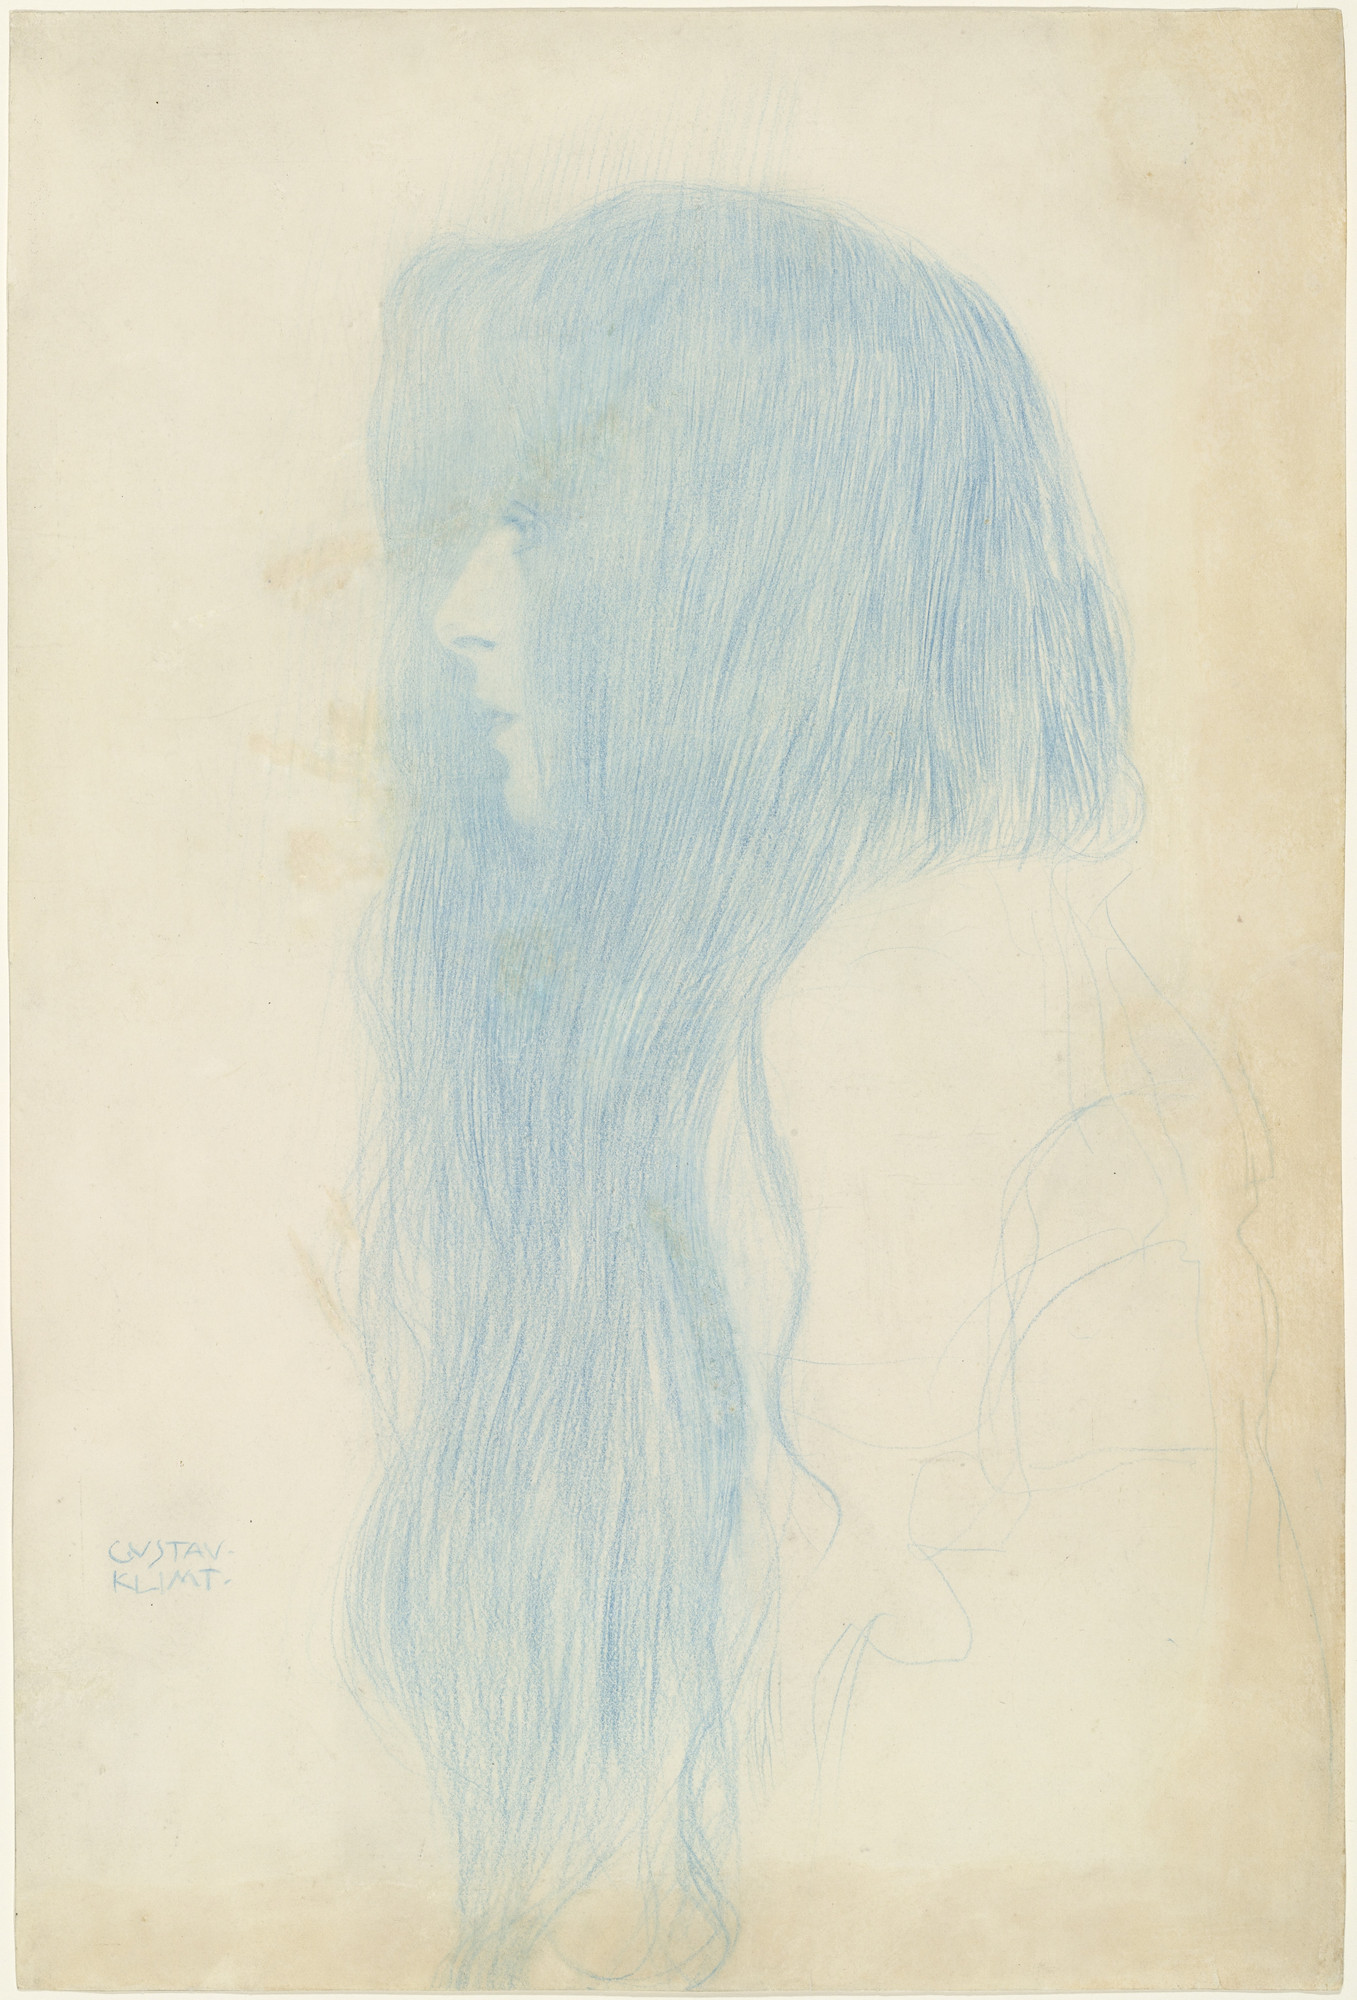 Gustav Klimt. Profile of a Girl (Study for 'Thalia and Melpomene') (Brustbild eines Mädchens mit langem Haar im Profil nach links) Profile of a Girl (Study for 'Thalia and Melpomene'). (1898-99)